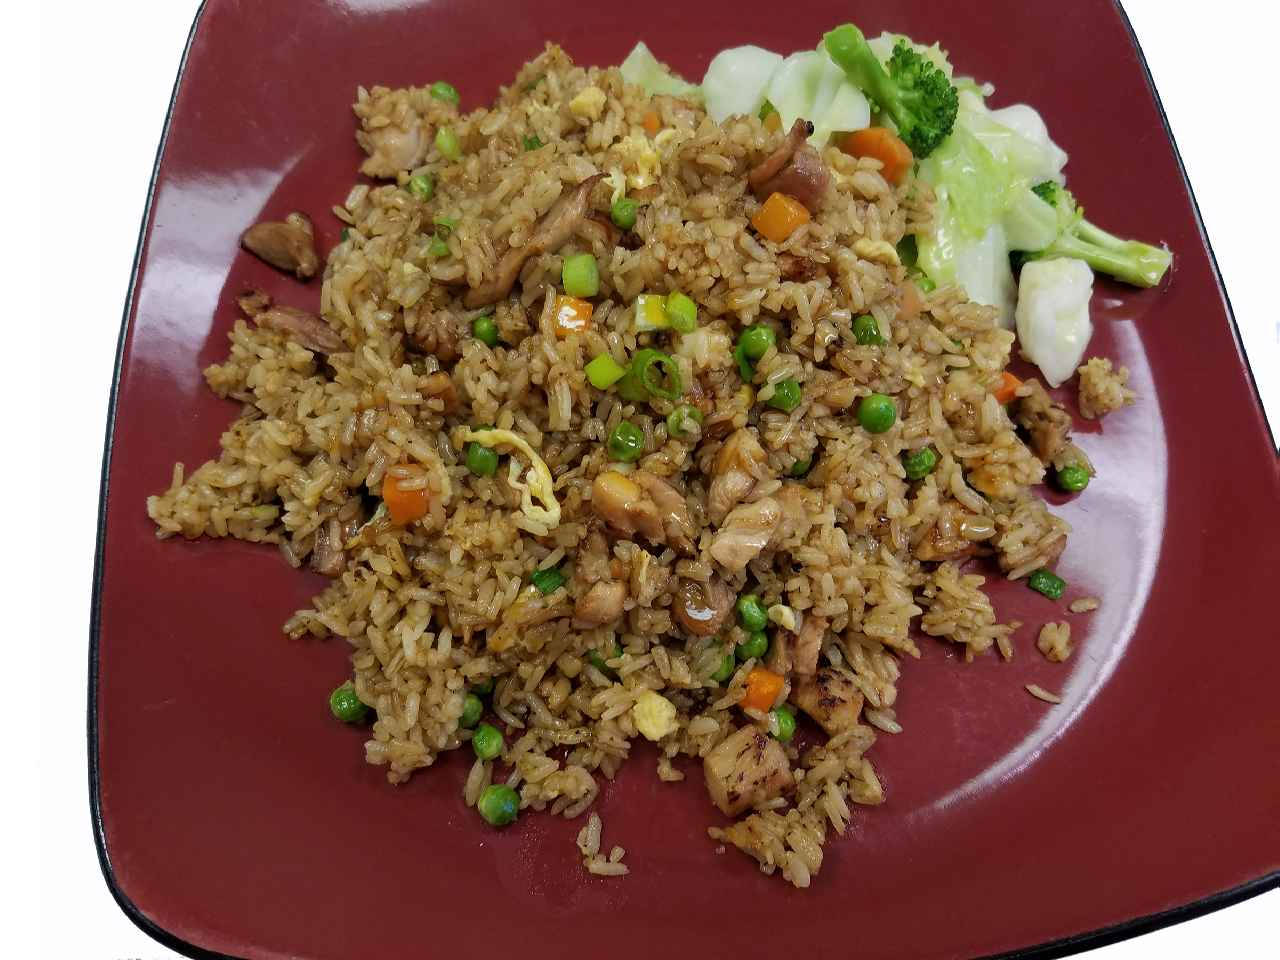 #8. Chicken Fried Rice